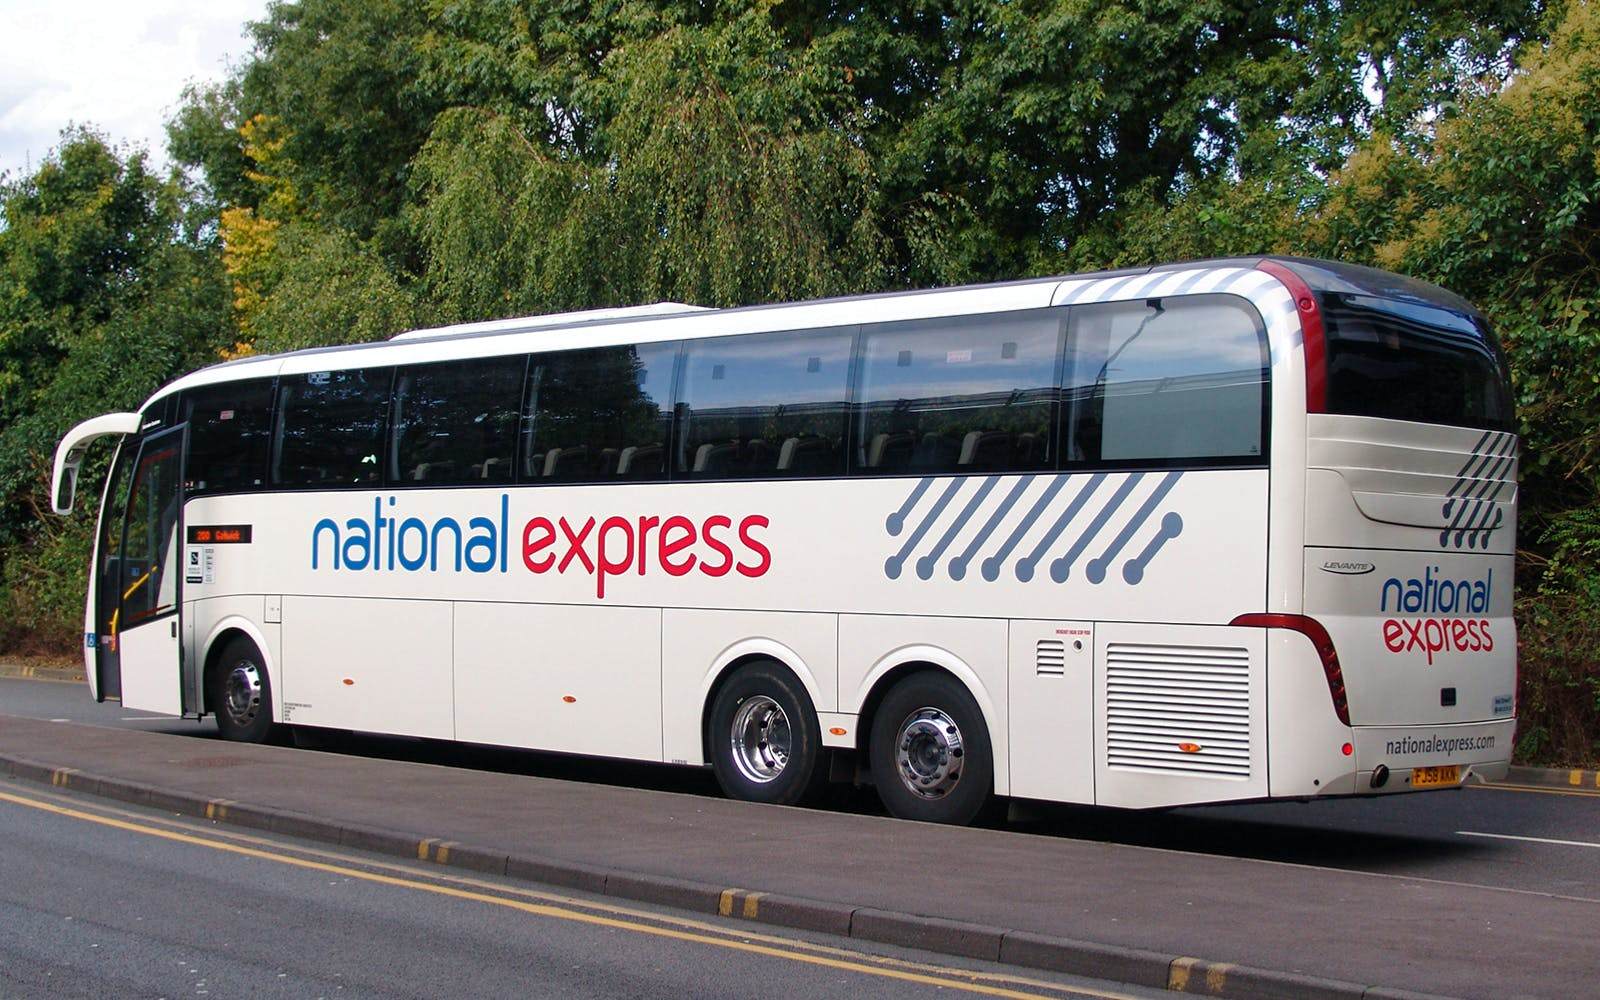 Luton Airport to Victoria Station Bus Transfers